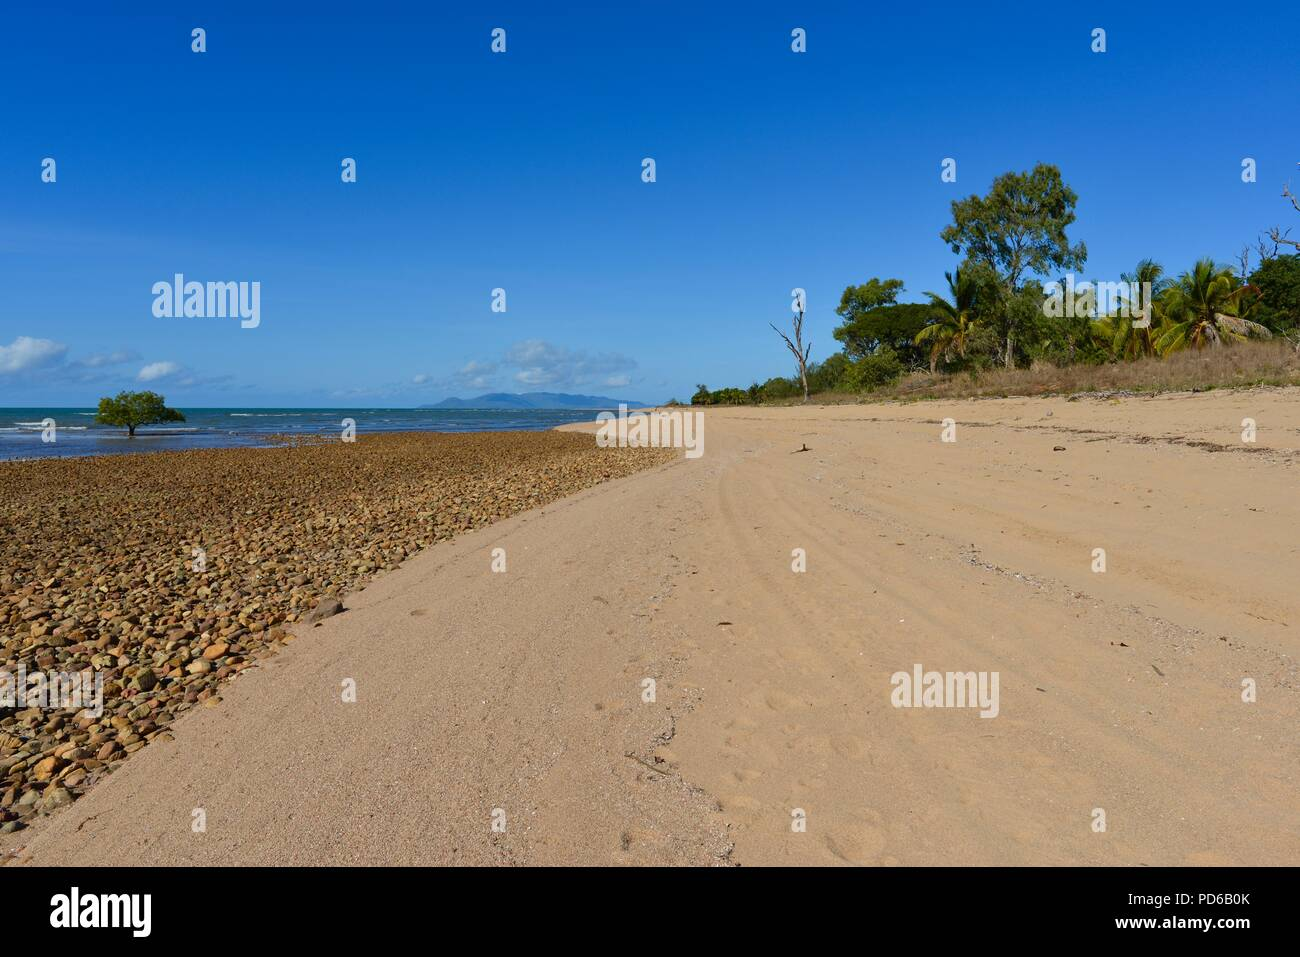 Rocky beach merging with a sandy beach, natural patterns, Coastal scenes from tropical north Queensland, Toolakea QLD, Australia - Stock Image